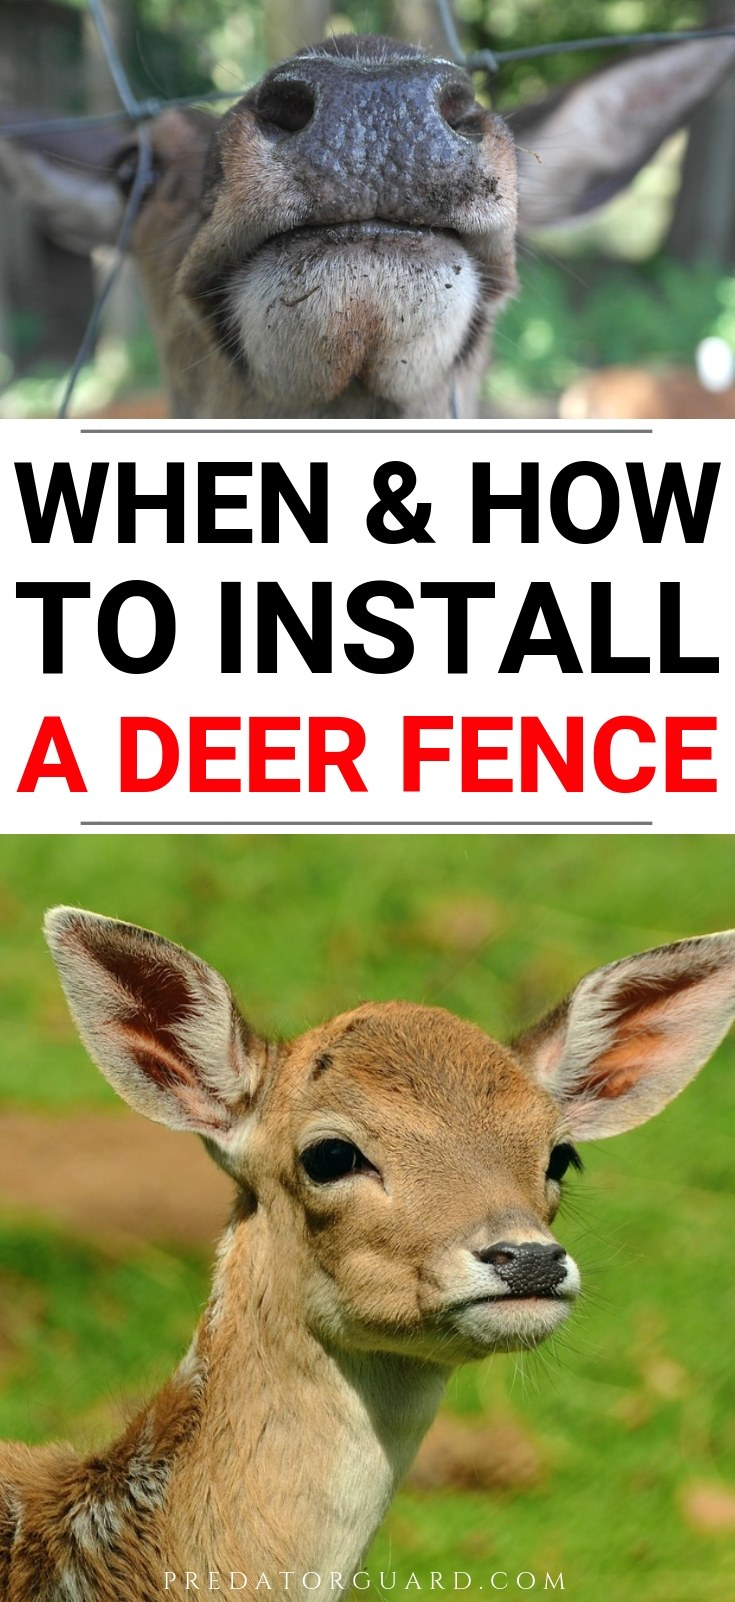 When-How-To-Install-A-Deer-Fence